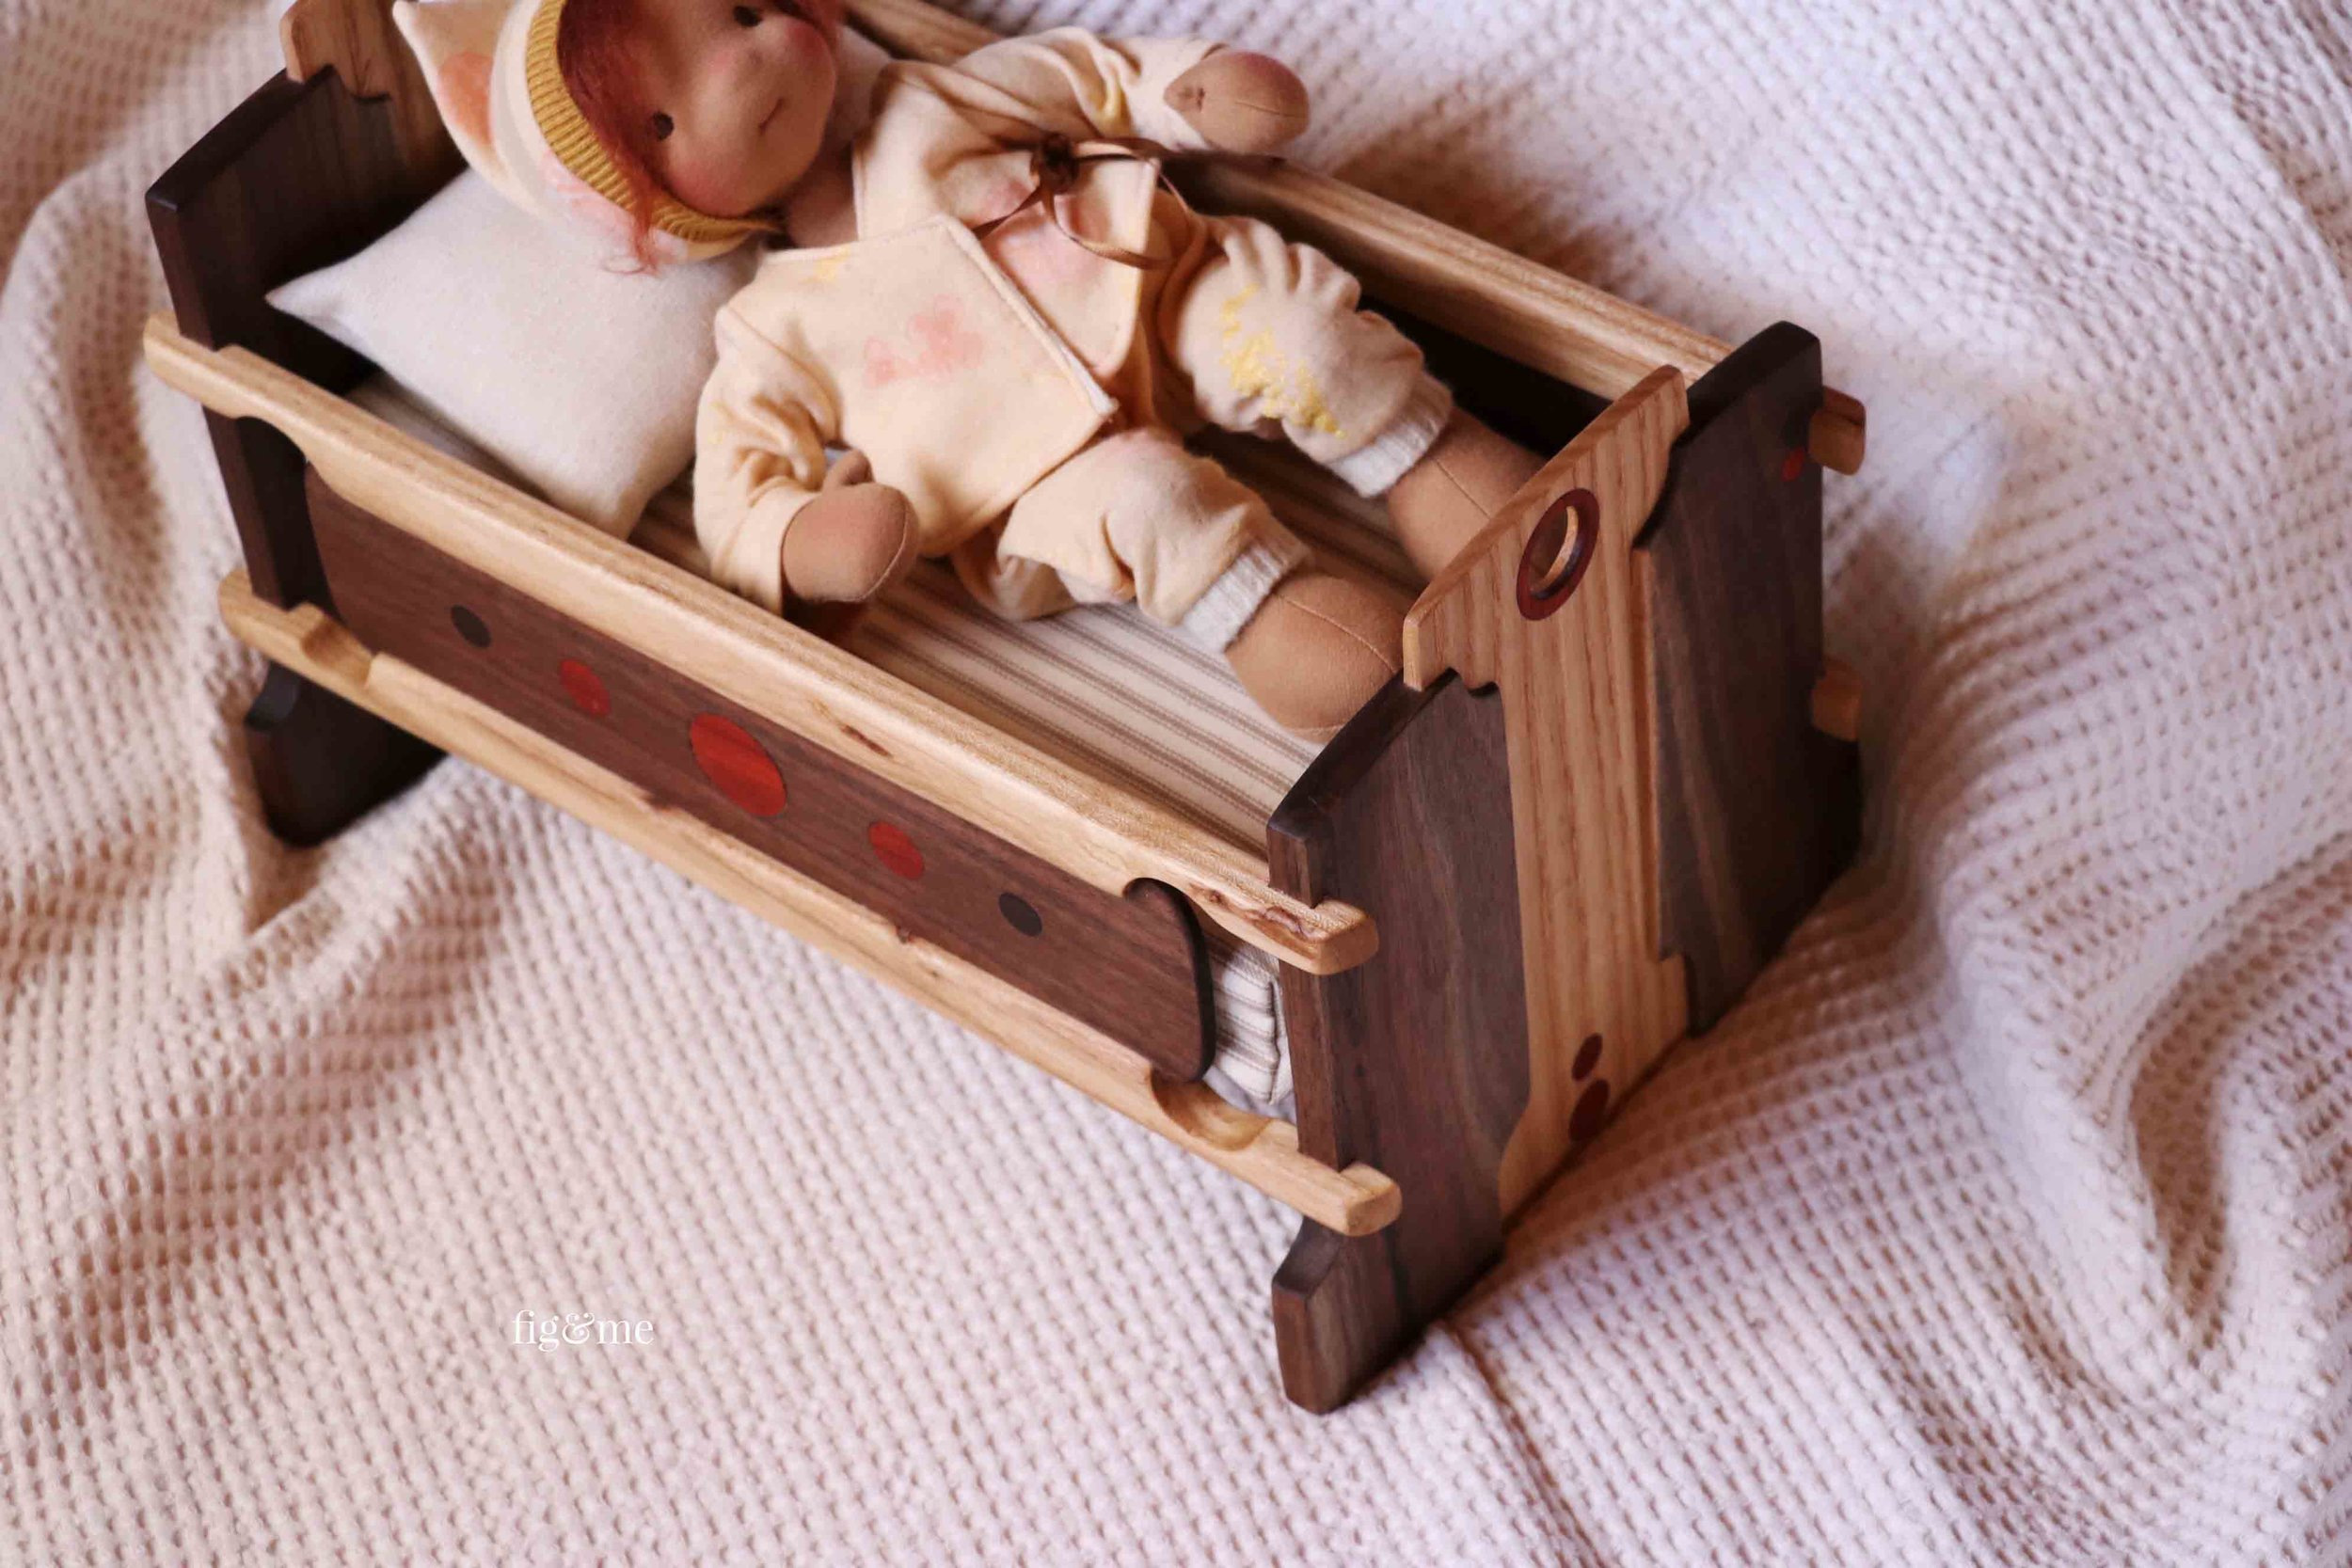 Kasja's wooden cradle, made of exotic hardwoods and with great care and detail.